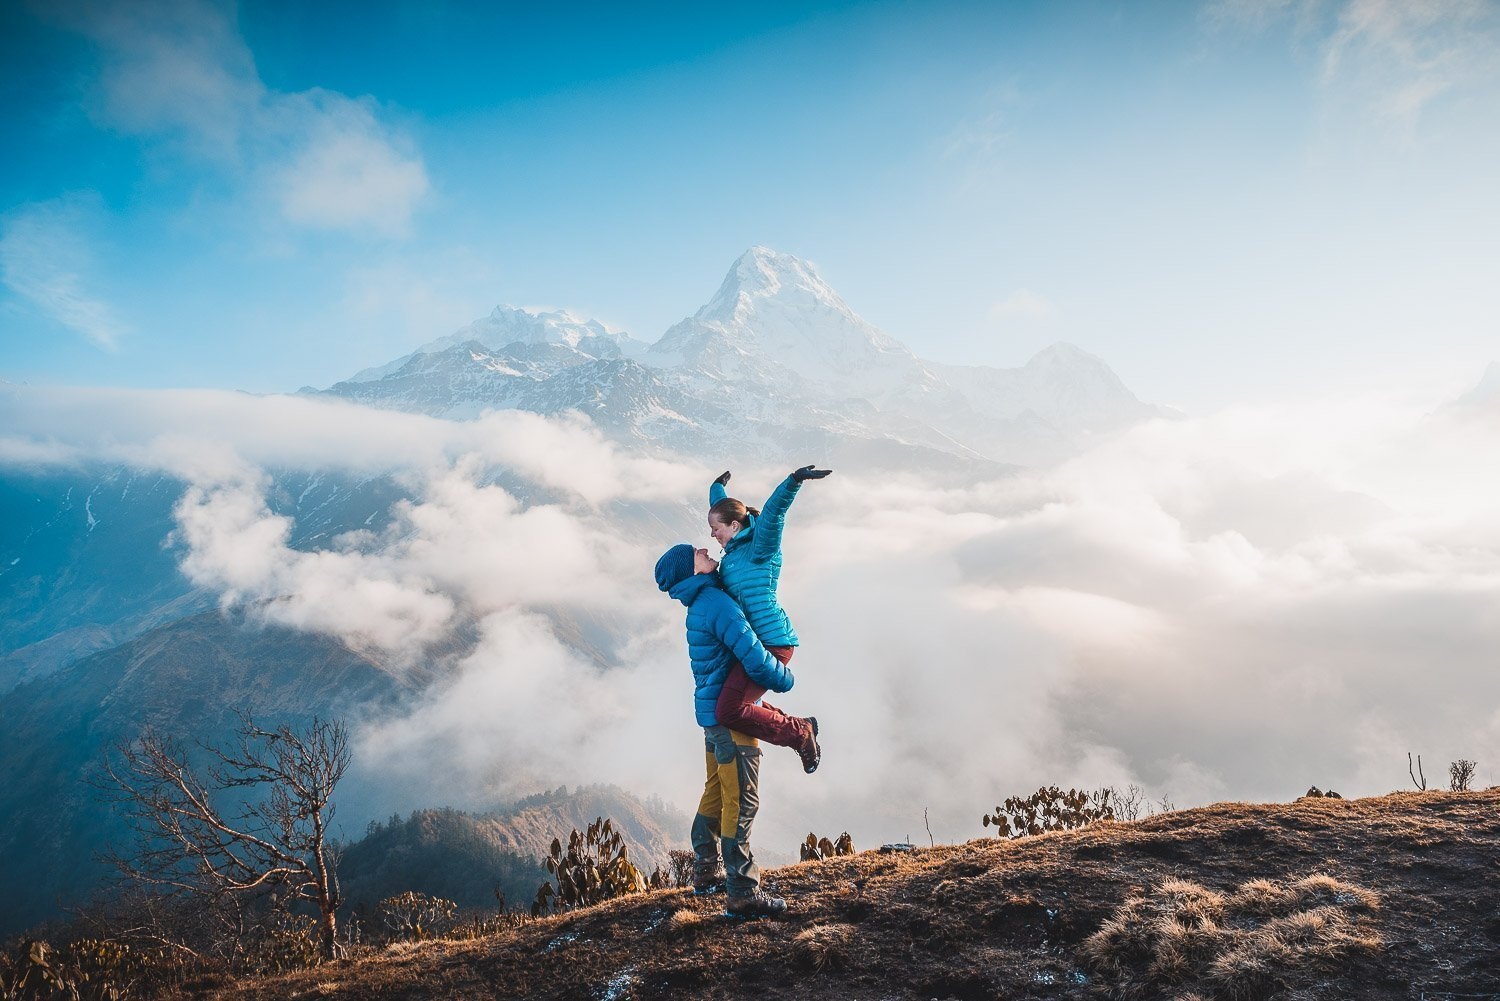 Getting back to the mountains in Nepal